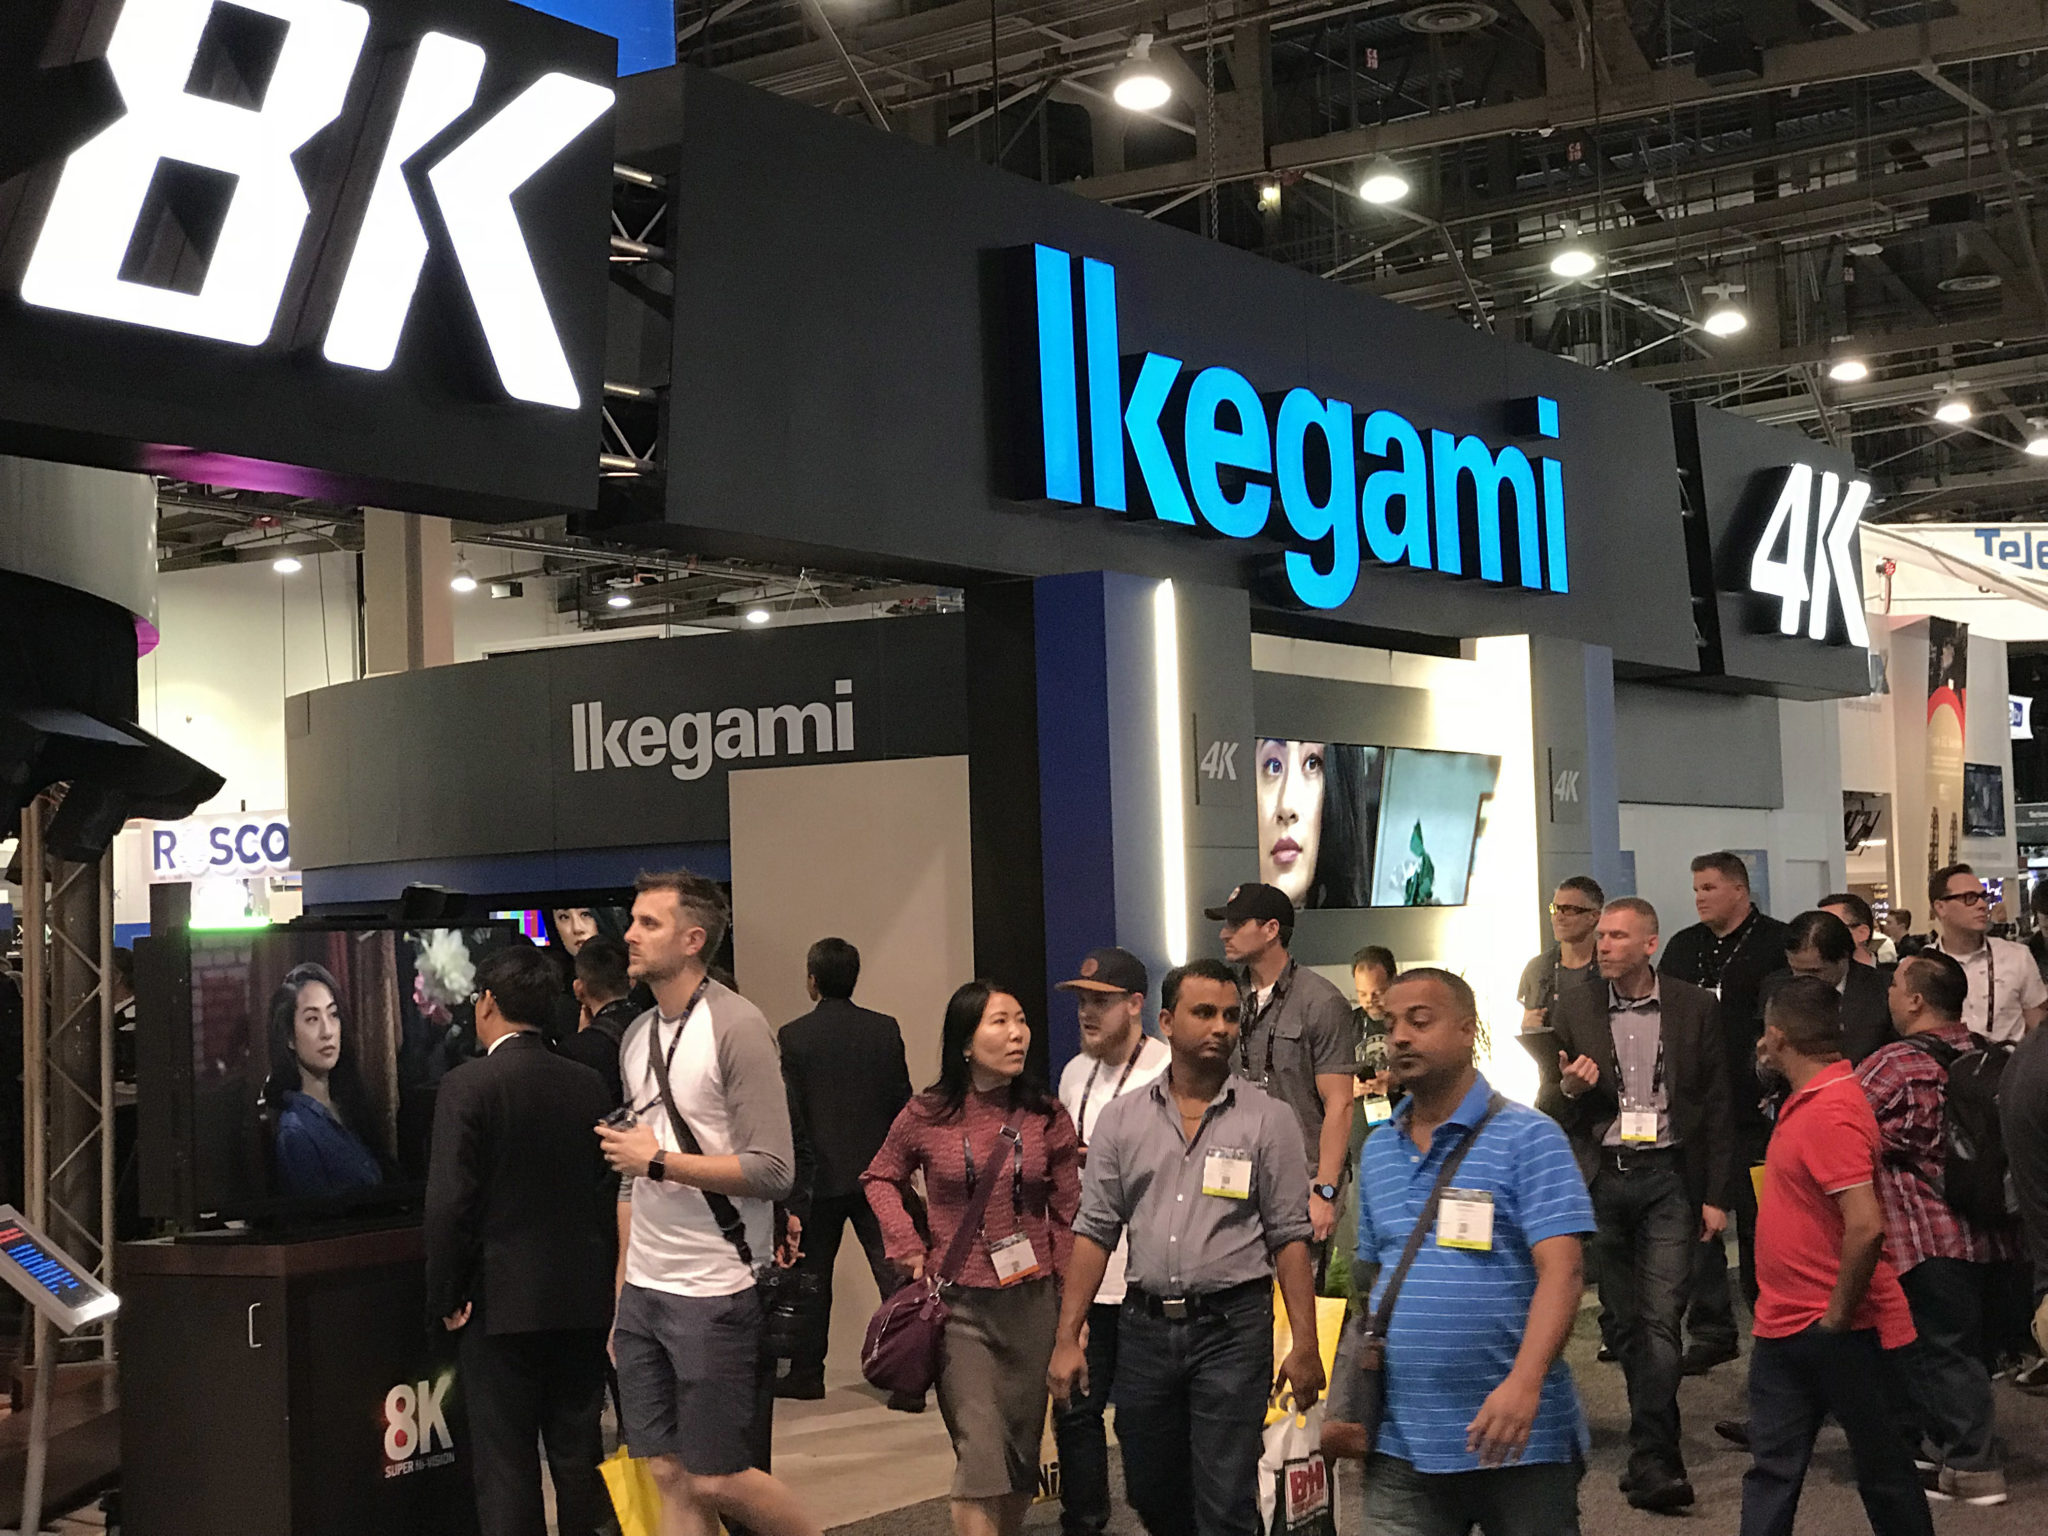 Ikegami 4K and 8K signage at NAB 2018